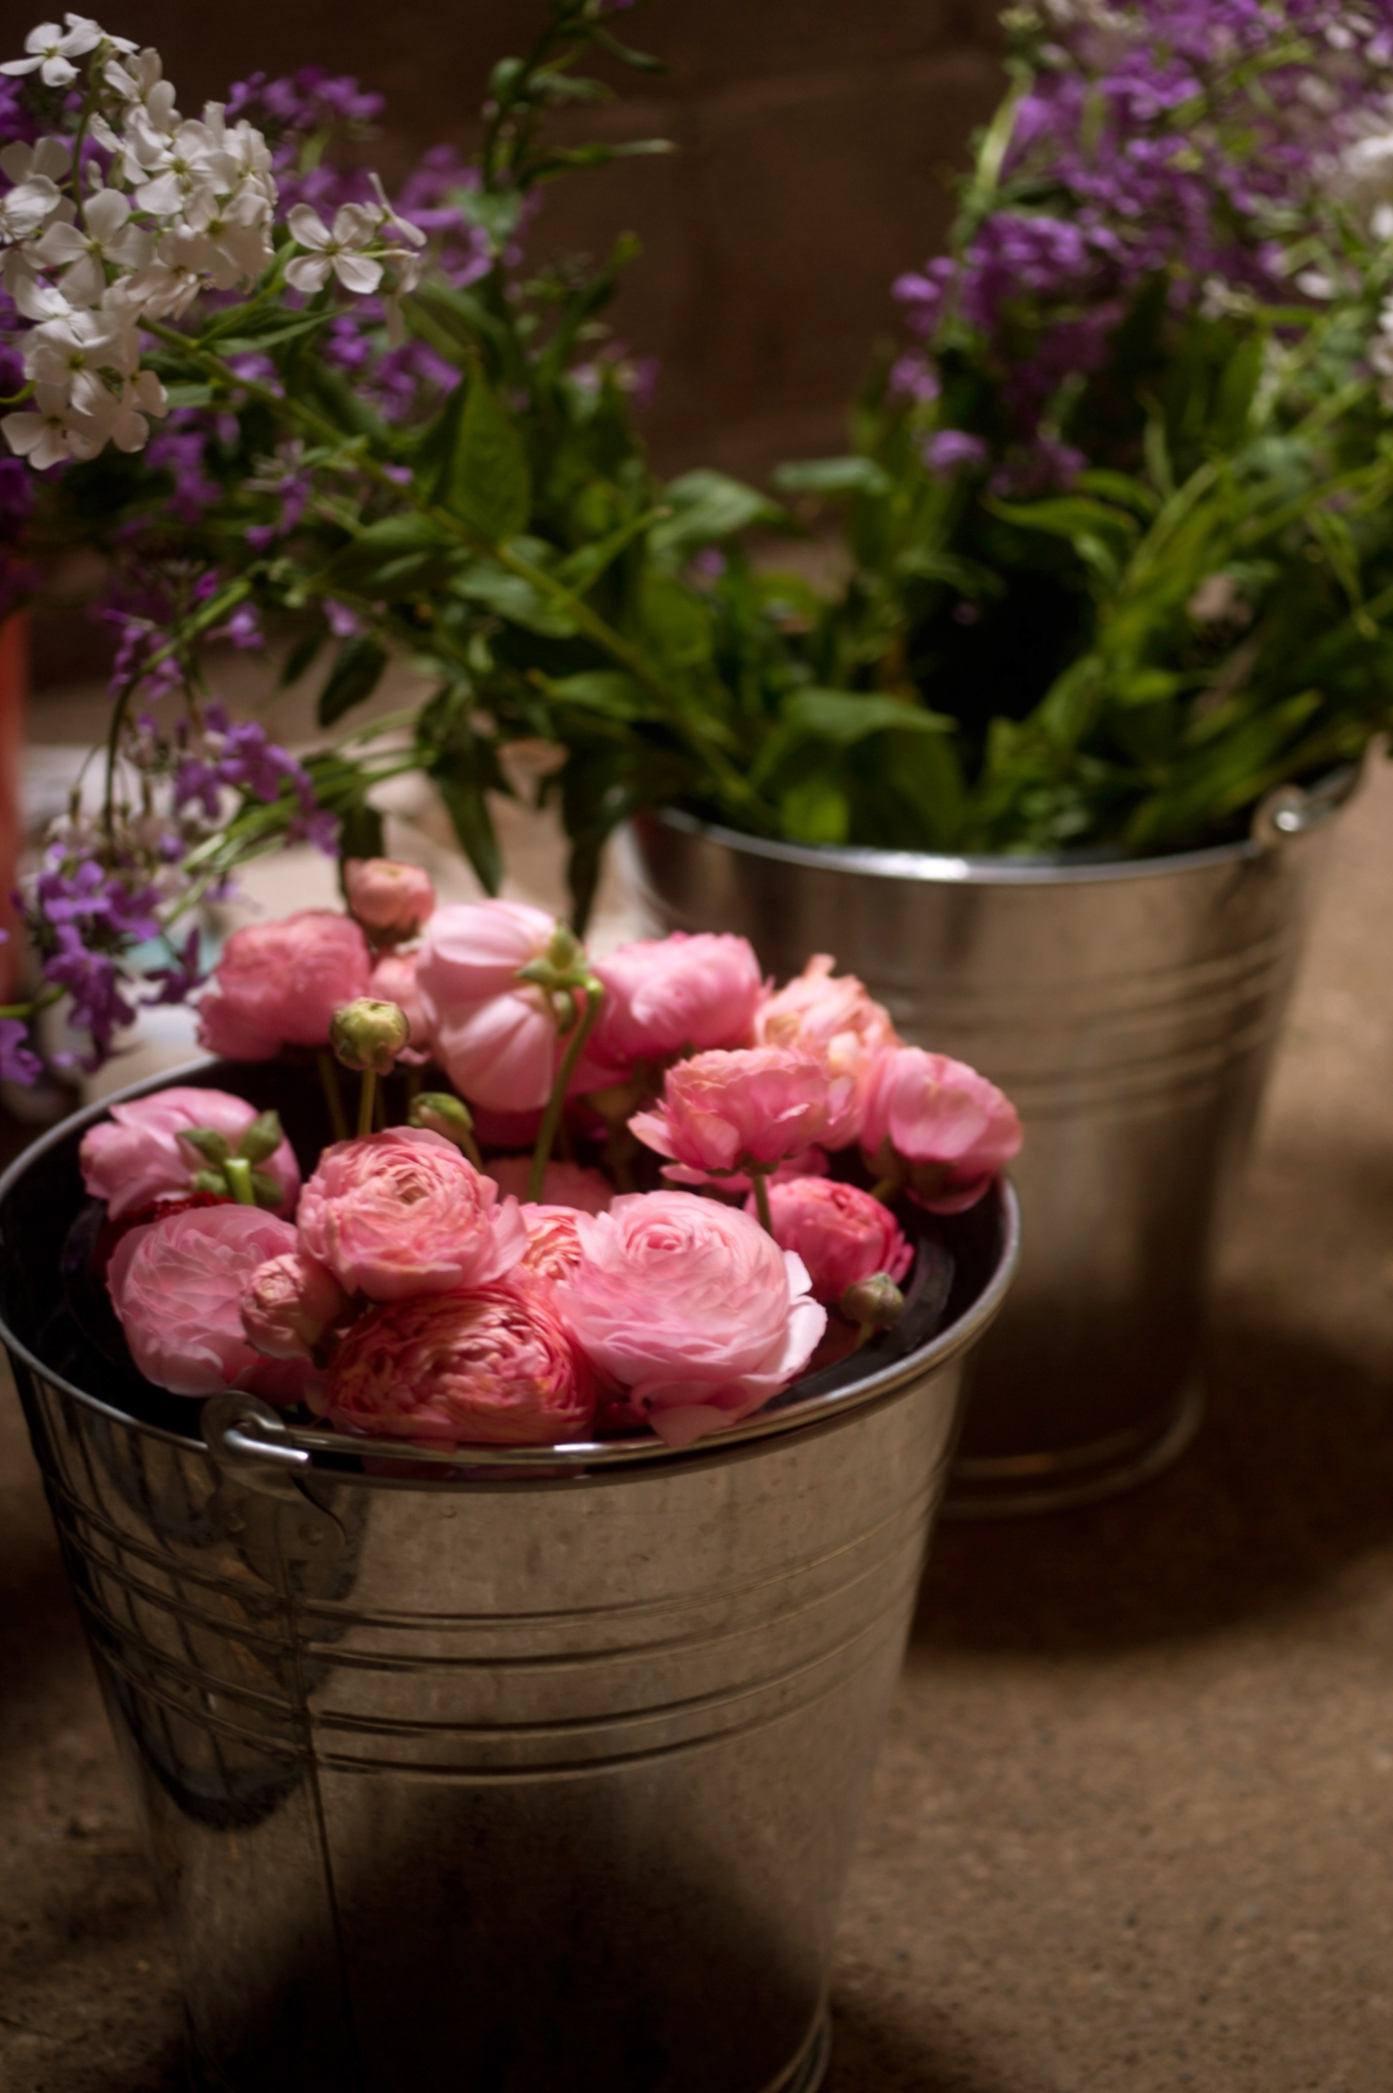 Silver buckets of freshly picked flowers here at Ginger House Garden in Northumberland.